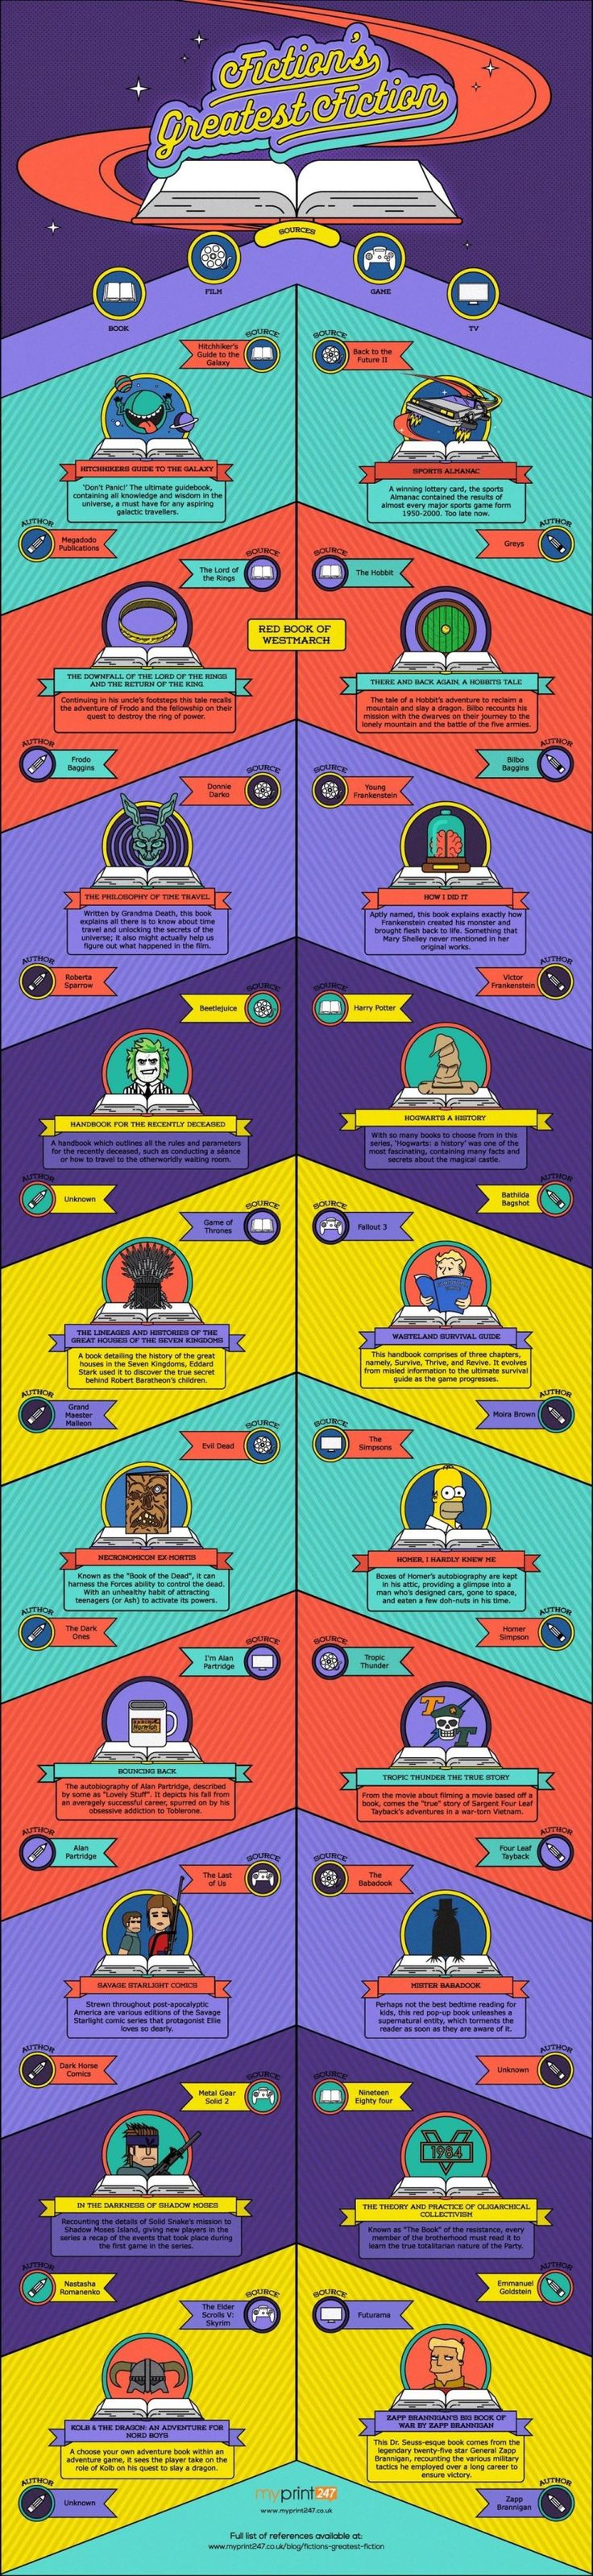 Fiction's best fiction Most famous fictional books mentioned in the works of fiction (infographic)